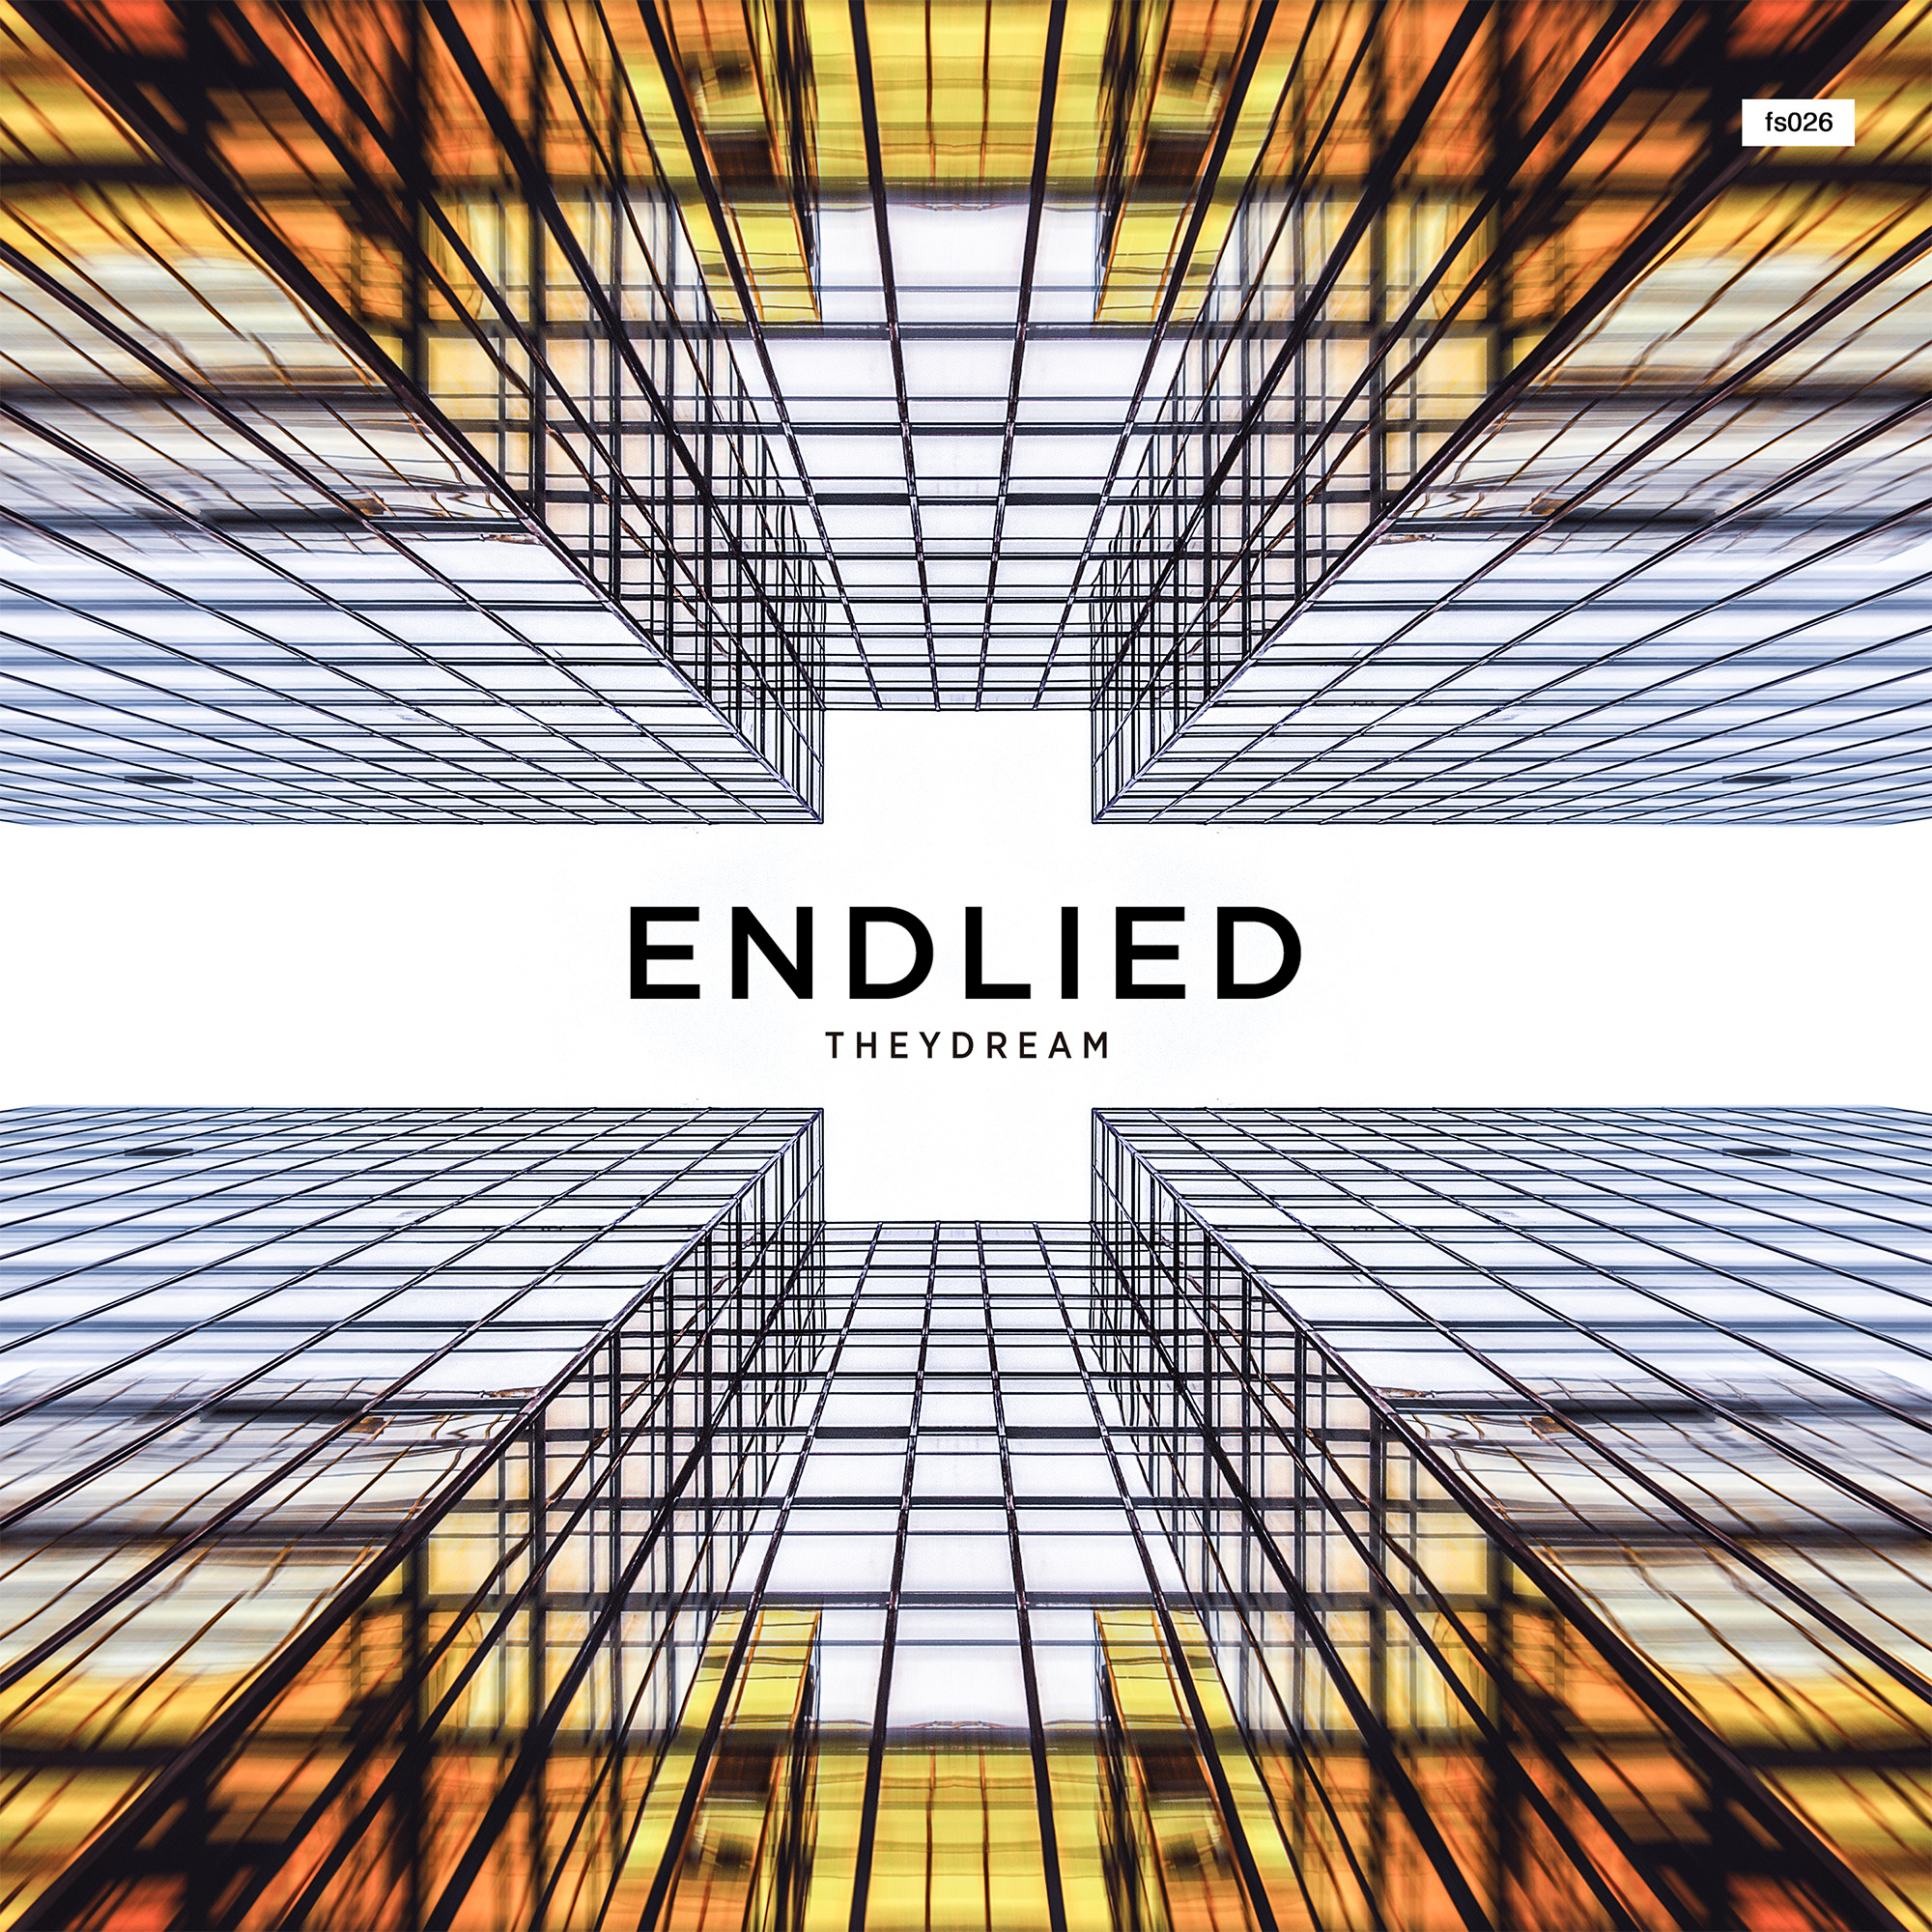 ENDLIED - THEYDREAMFollowing the success of their last EP, our Swiss family members Theydream return with another two-tracker.With the name-giving A-side track Endlied they remain true to themselves without playing it safe. Get lost in an anthem-like ride that is built on patience, sure instinct and pure dedication. Deep, yet incredibly positive, Endlied delivers a unique listening experience.Zuletzt die Wahrheit, which could be loosely translated to 'the truth at last', is a consequent and honest statement towards all techno enthusiasts who appreciate a spheric tapestry of sound with an unconditional drive into the spoilt auditory canals.Theydream, who stand for authenticity and a remarkable perseverance, keep inspiring us and whet our appetite for more input yet again.__SpotifyApple musicBeatport